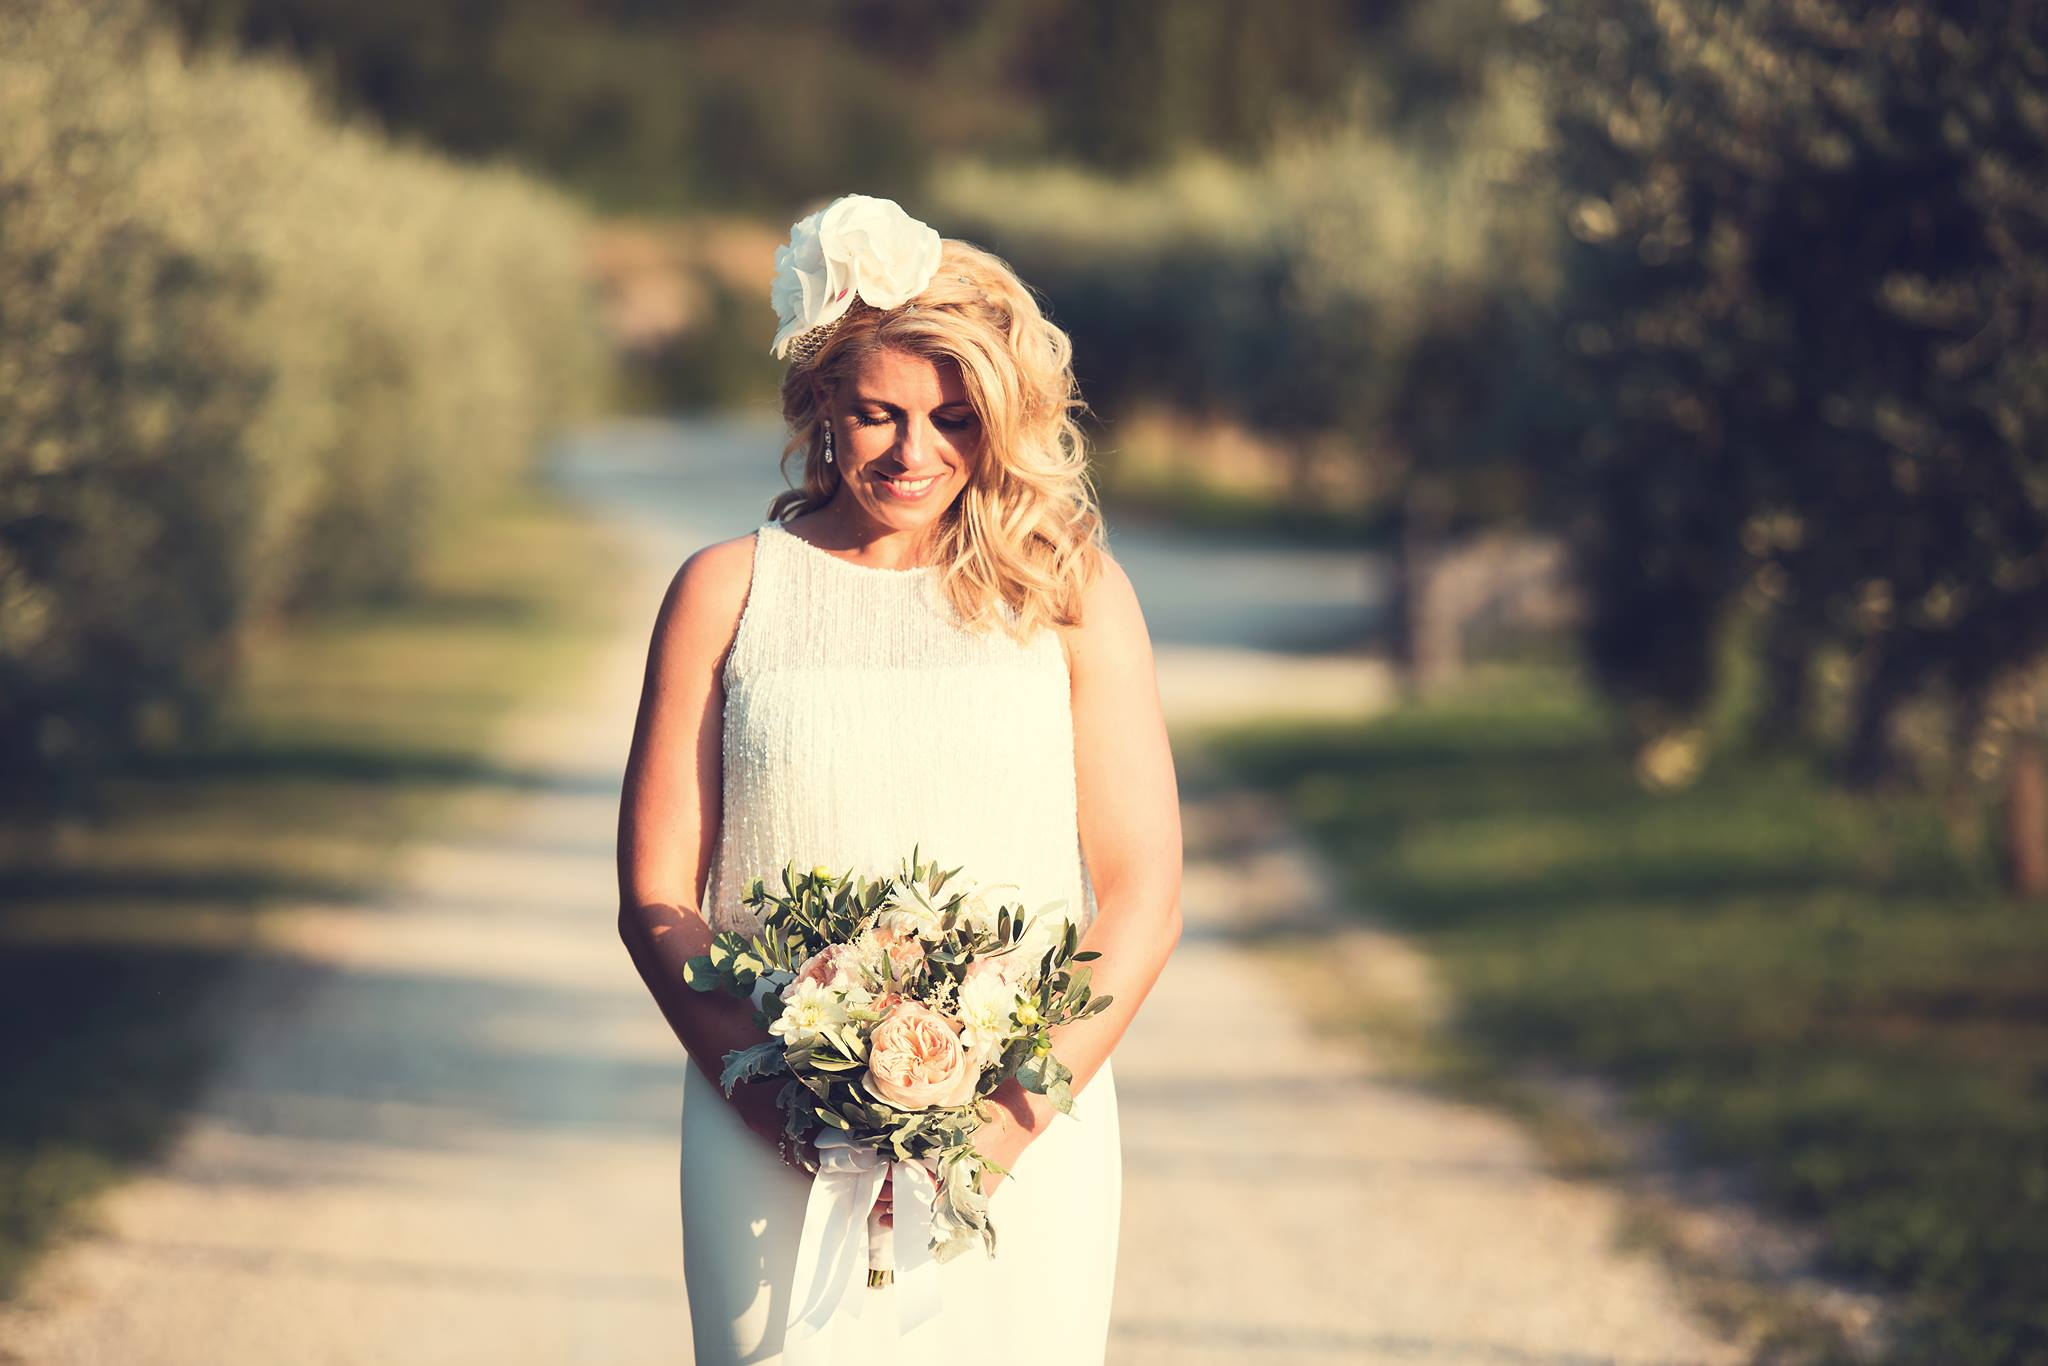 14-olive-and-roses-bouquet-peach-pink-bride-lake-garda-wedding